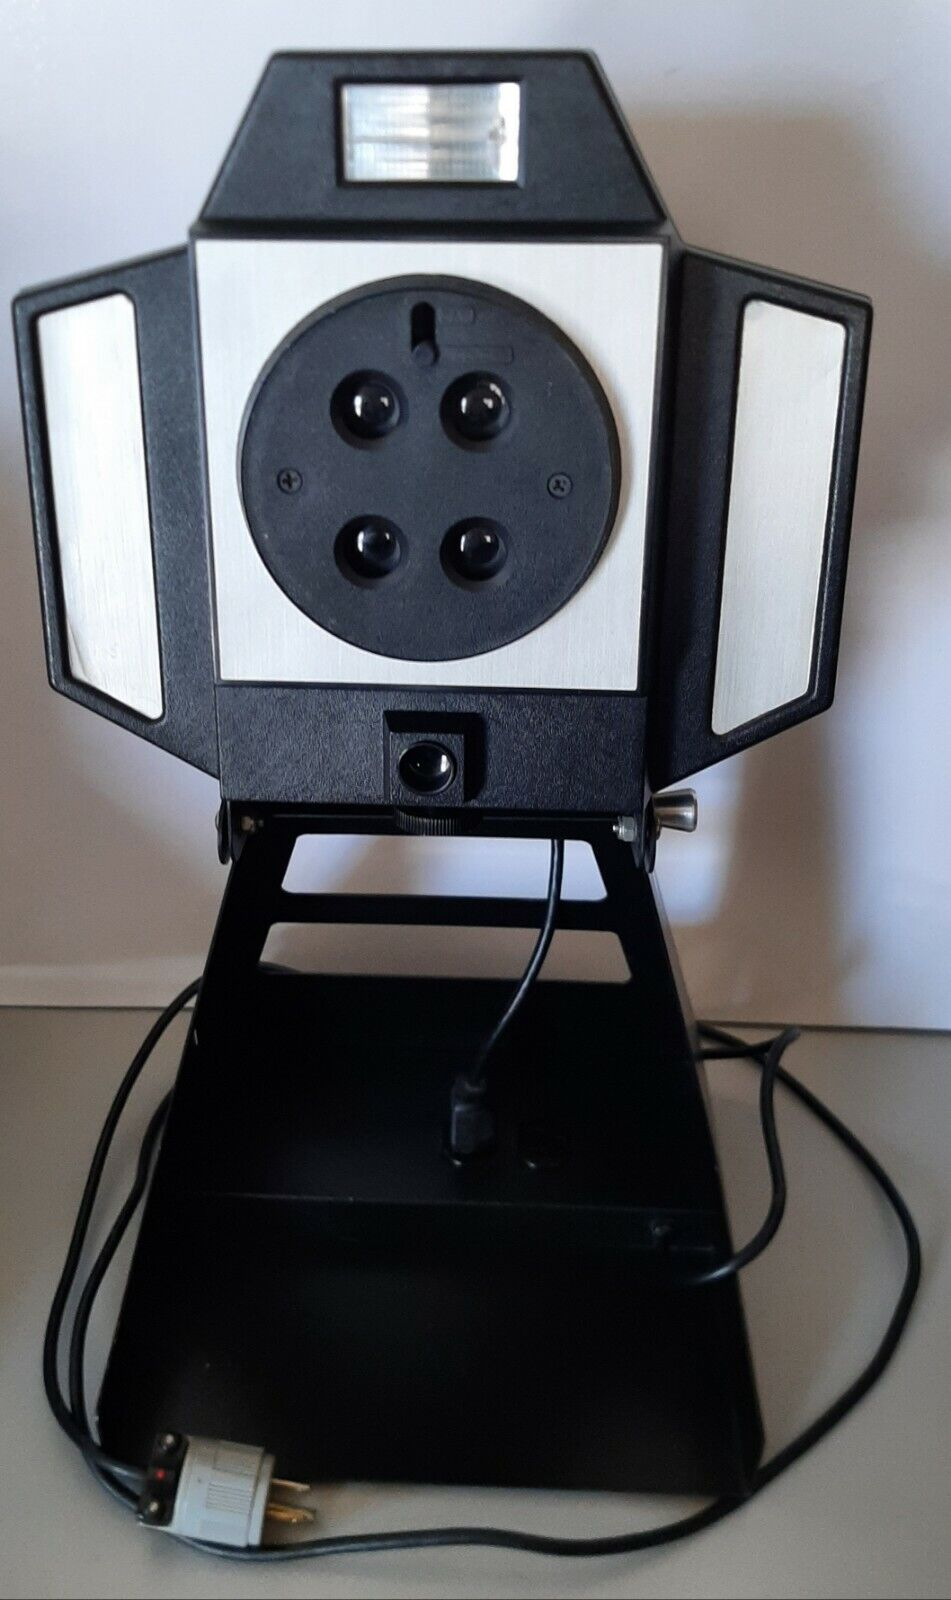 Polaroid Camera 4-Deluxe ID Photo Passport Instant Film With Stand - $49.99